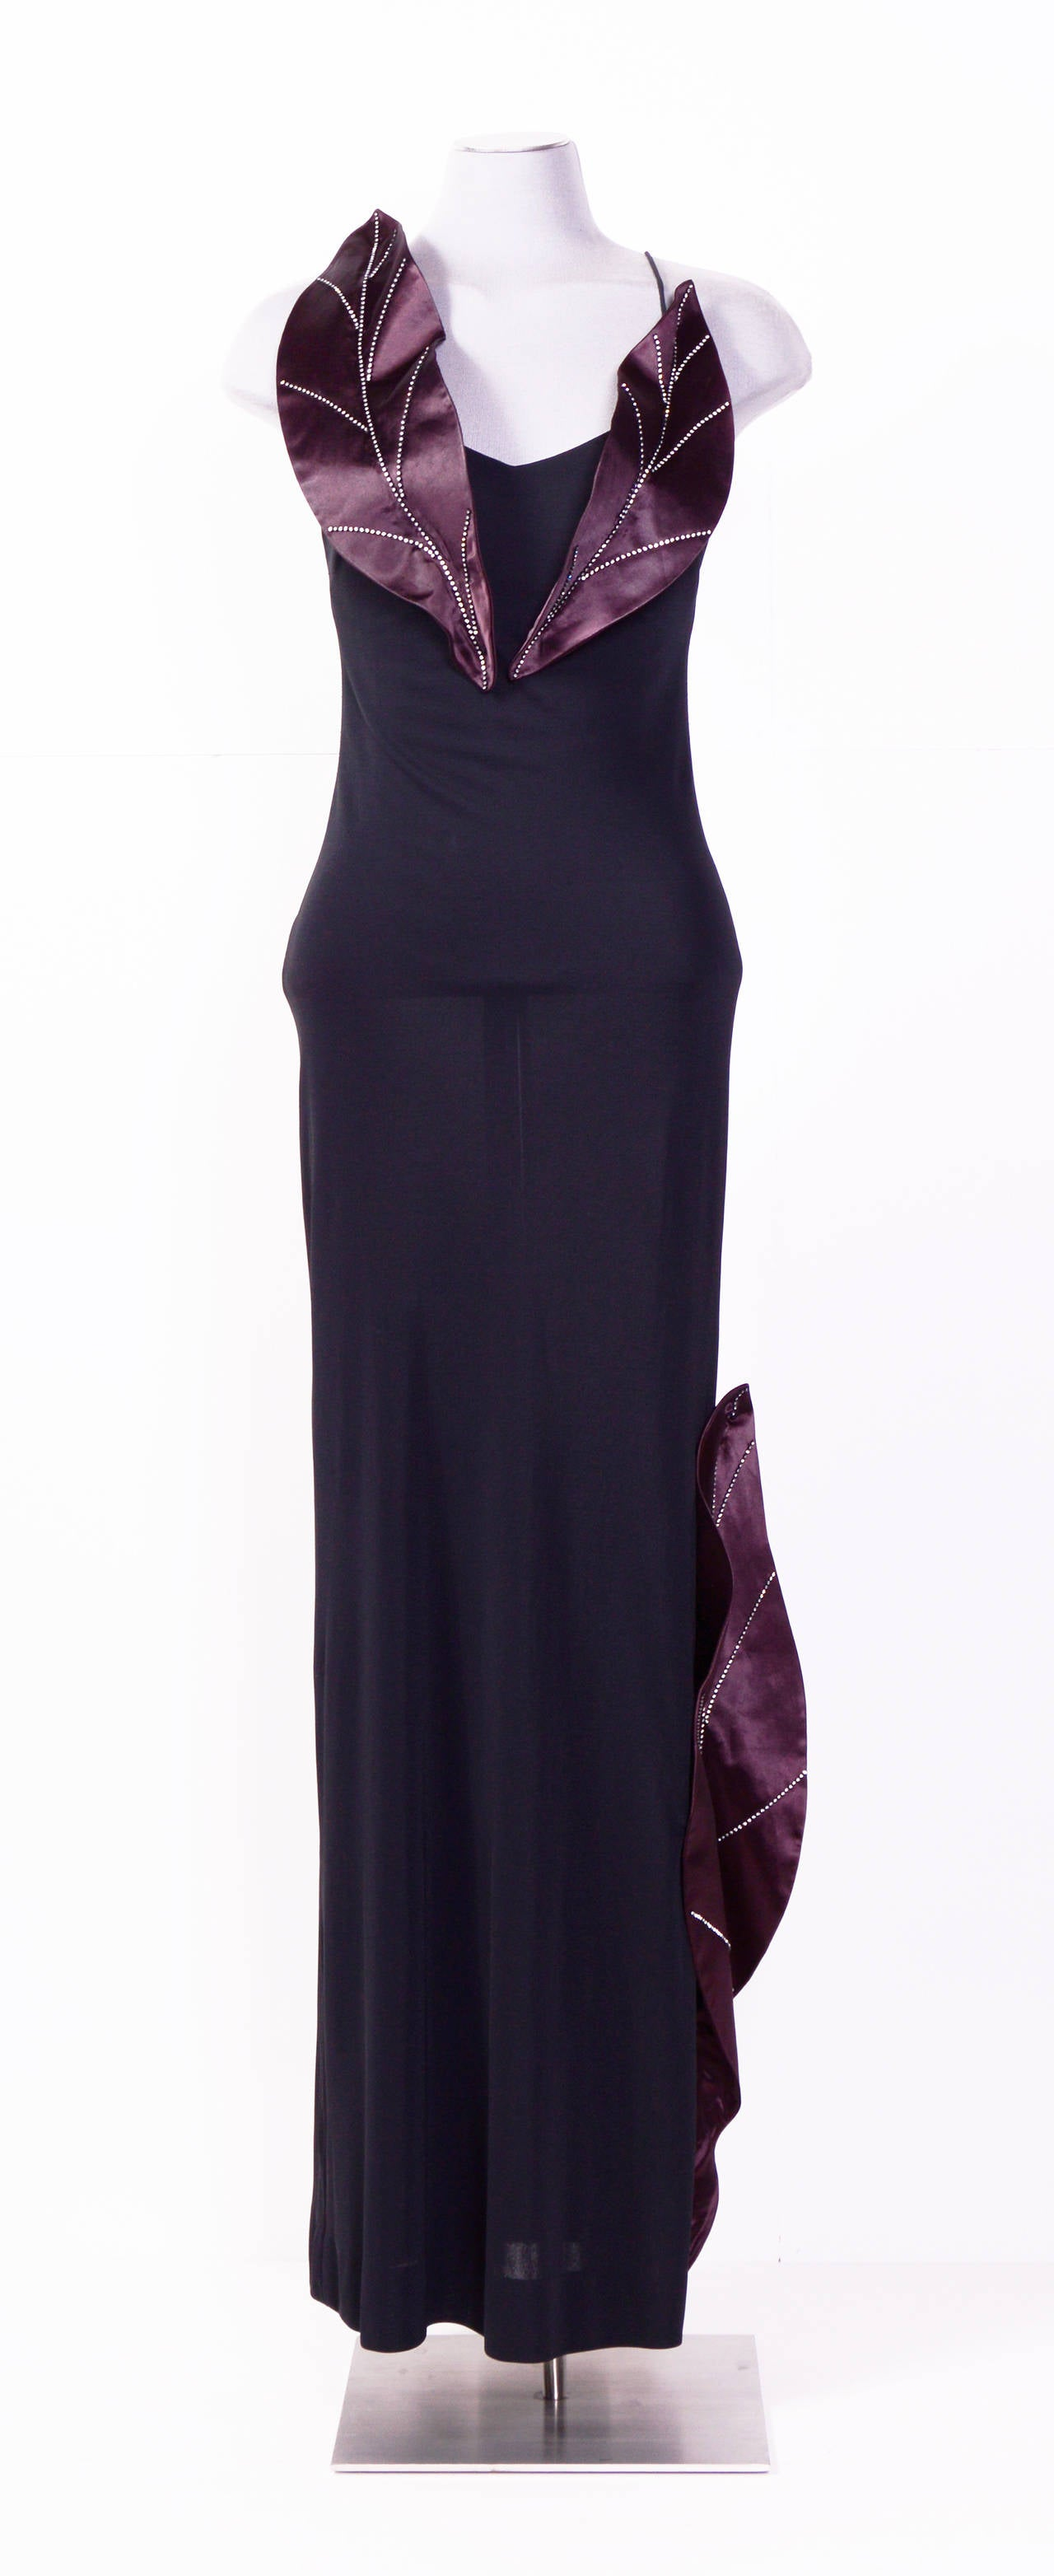 Loris Azzaro 1970's unique jersey long dress In Excellent Condition For Sale In Antwerp, BE